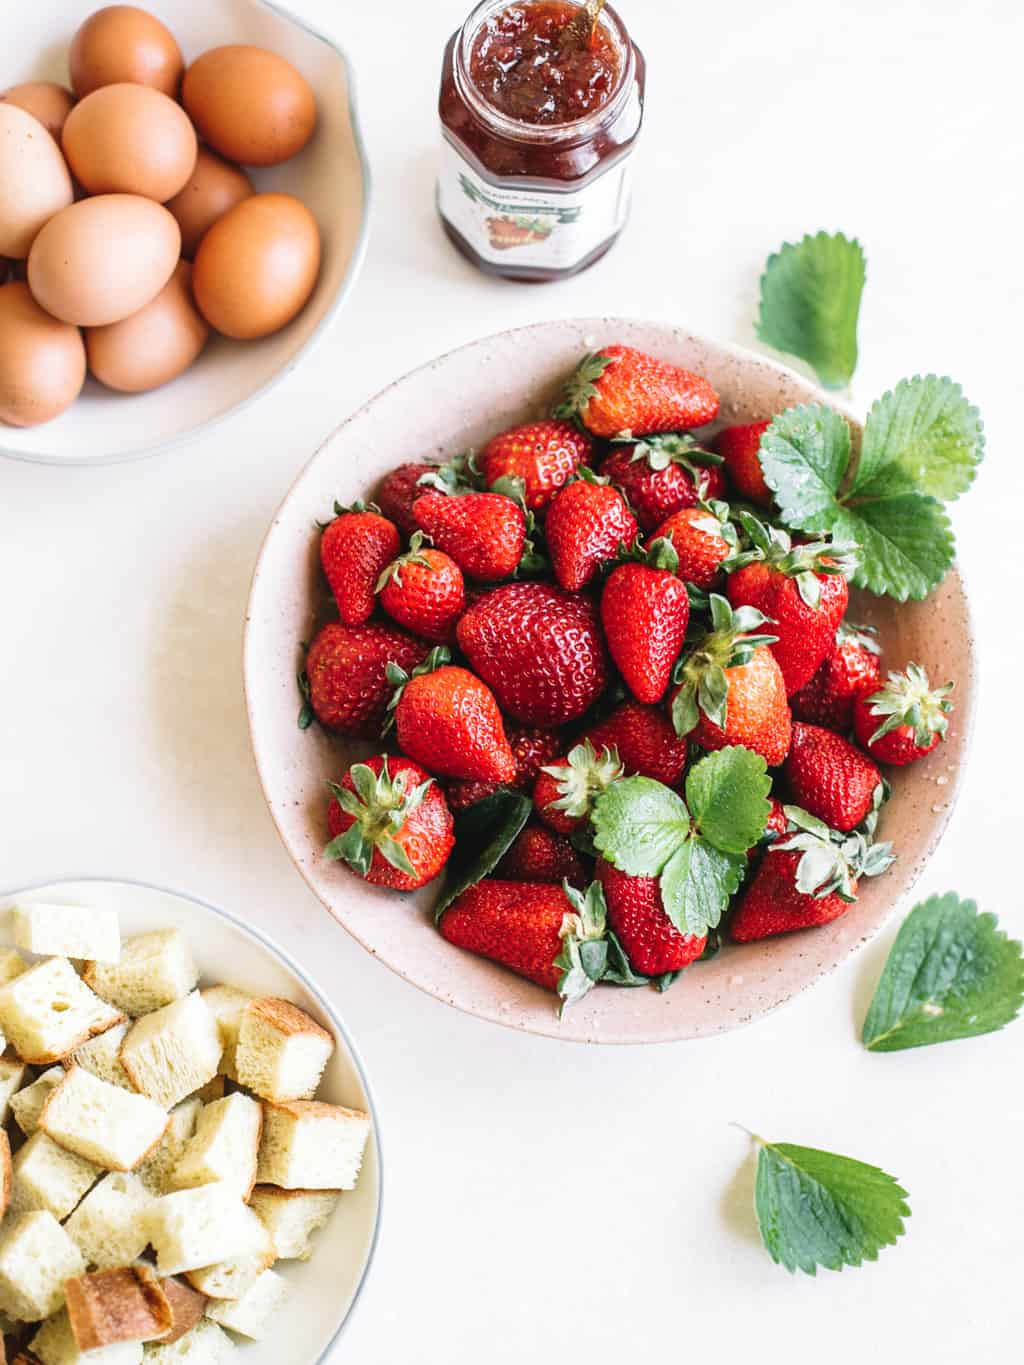 Fresh strawberries in a white bowl with bread cubes in a white bowl and eggs in a white bowl